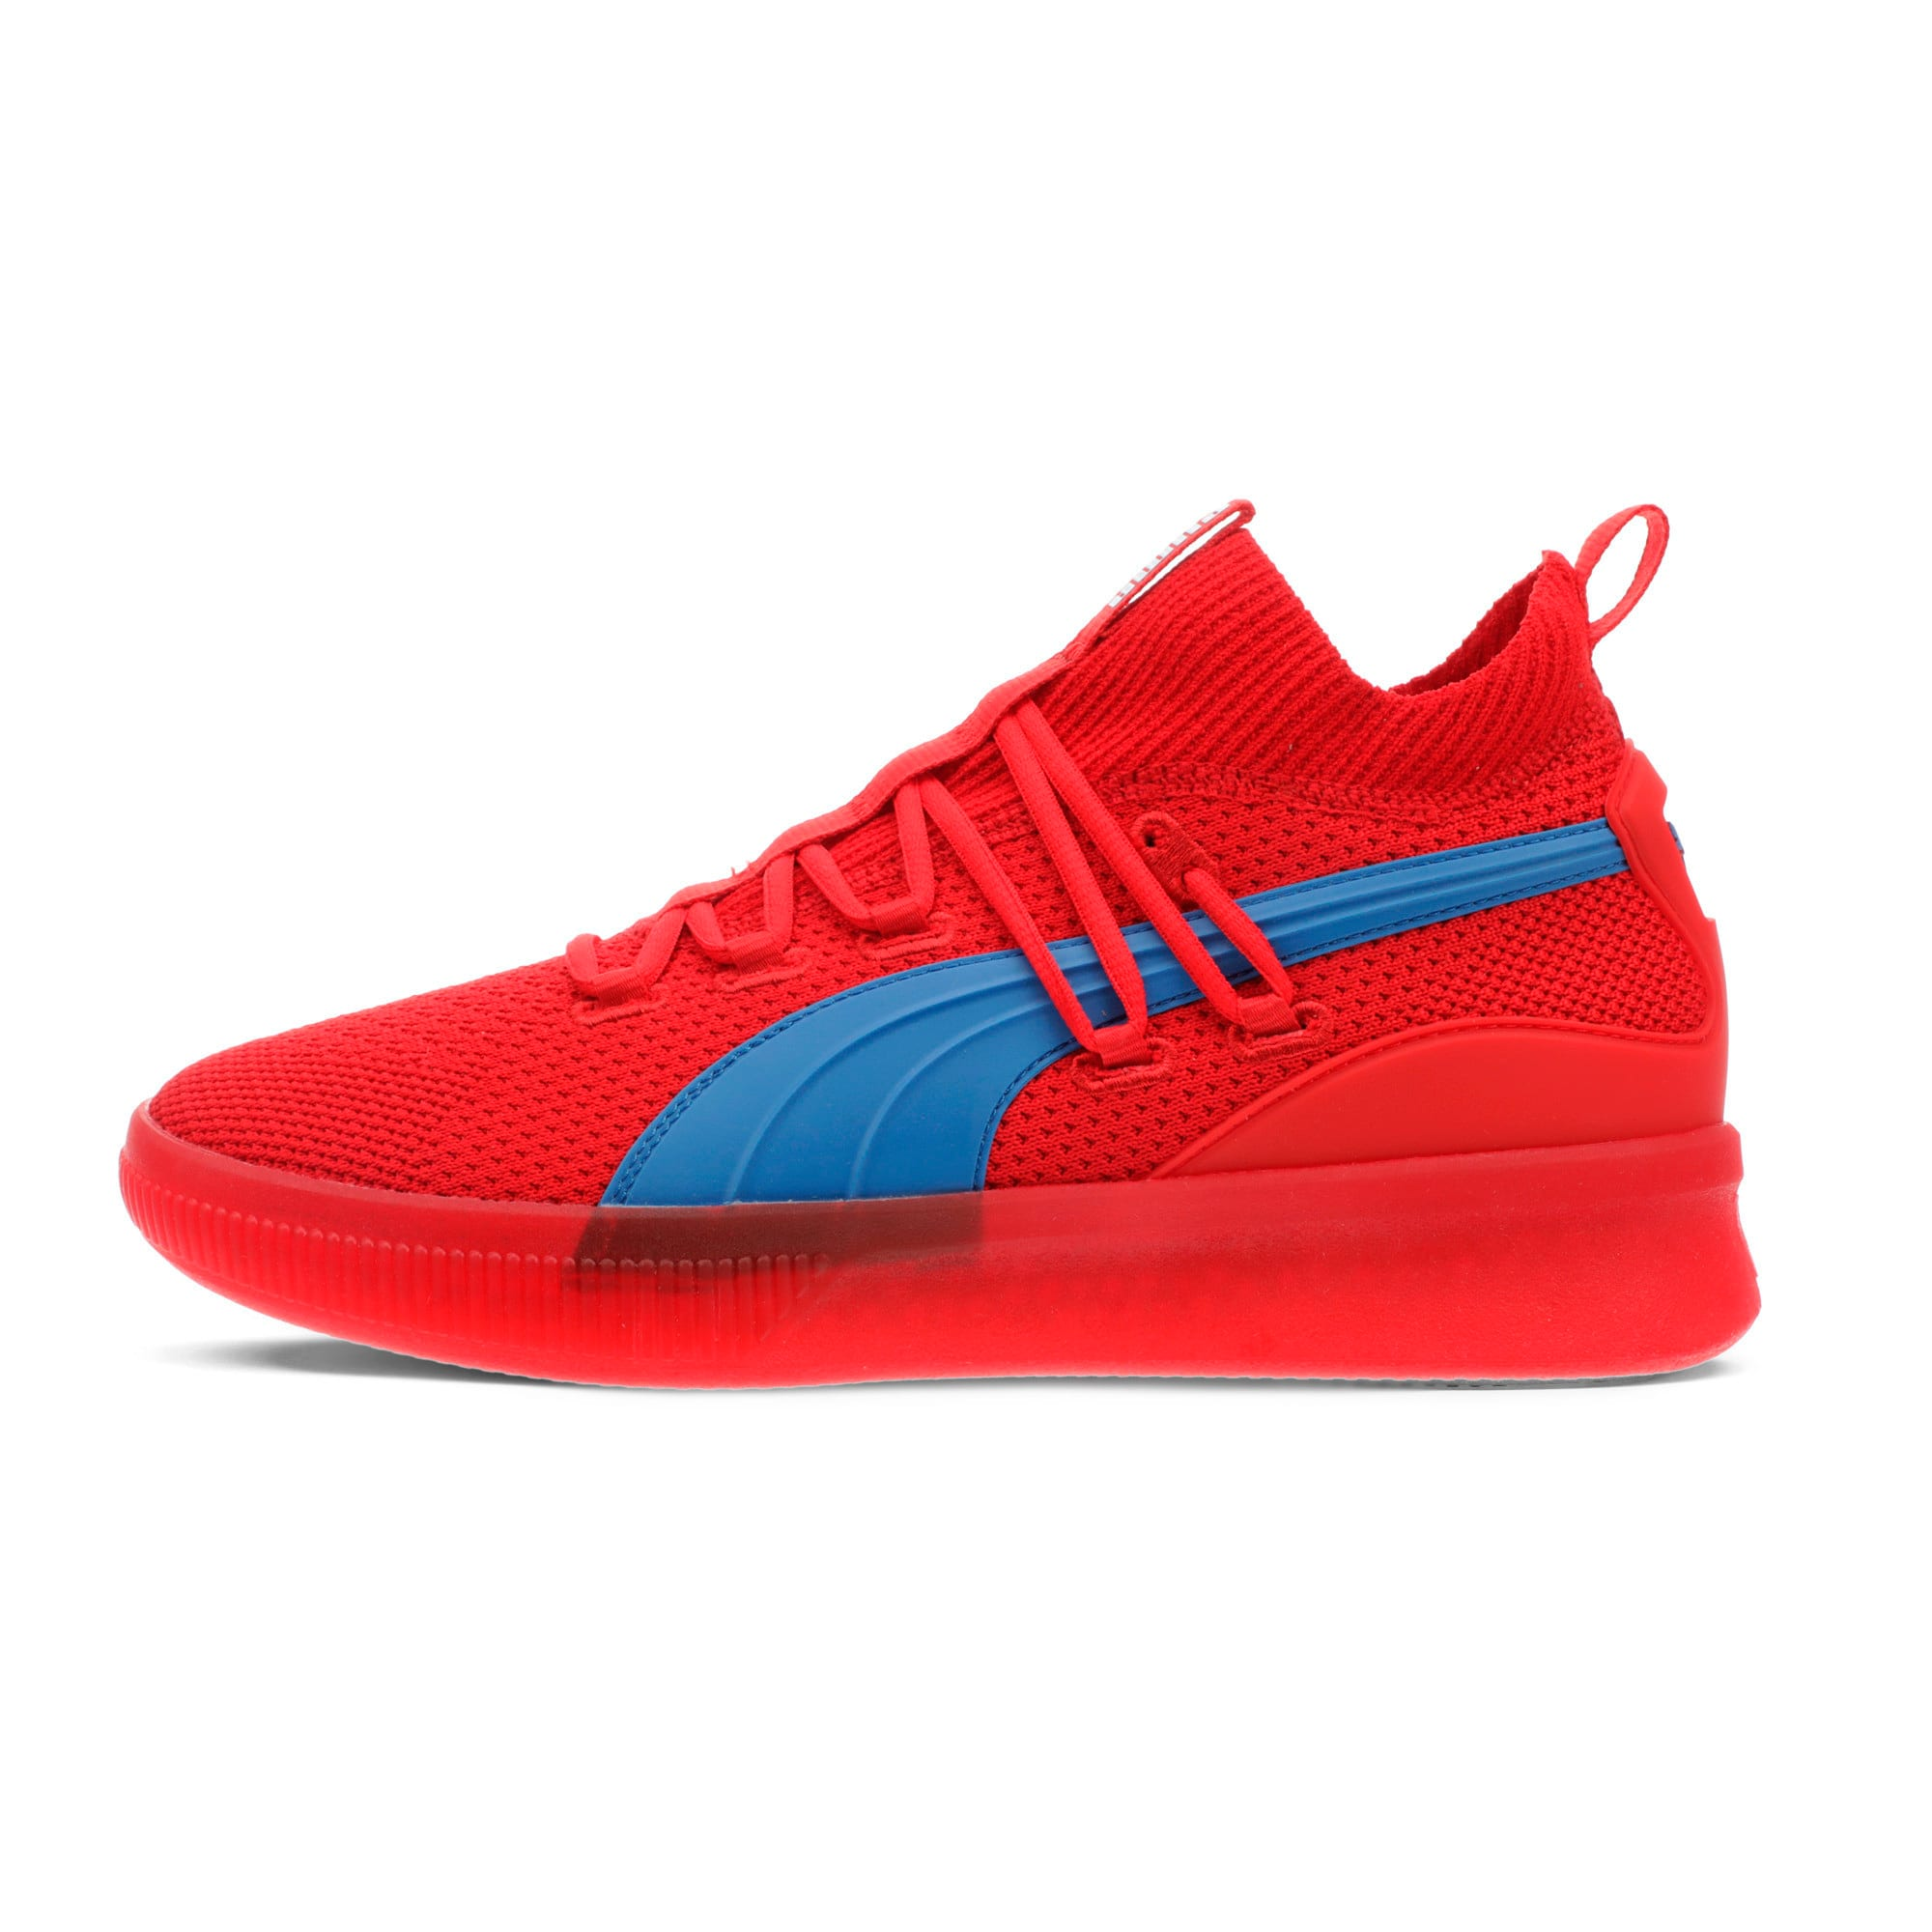 Thumbnail 1 of Clyde Court Core Basketball Shoes, High Risk Red-Strong Blue, medium